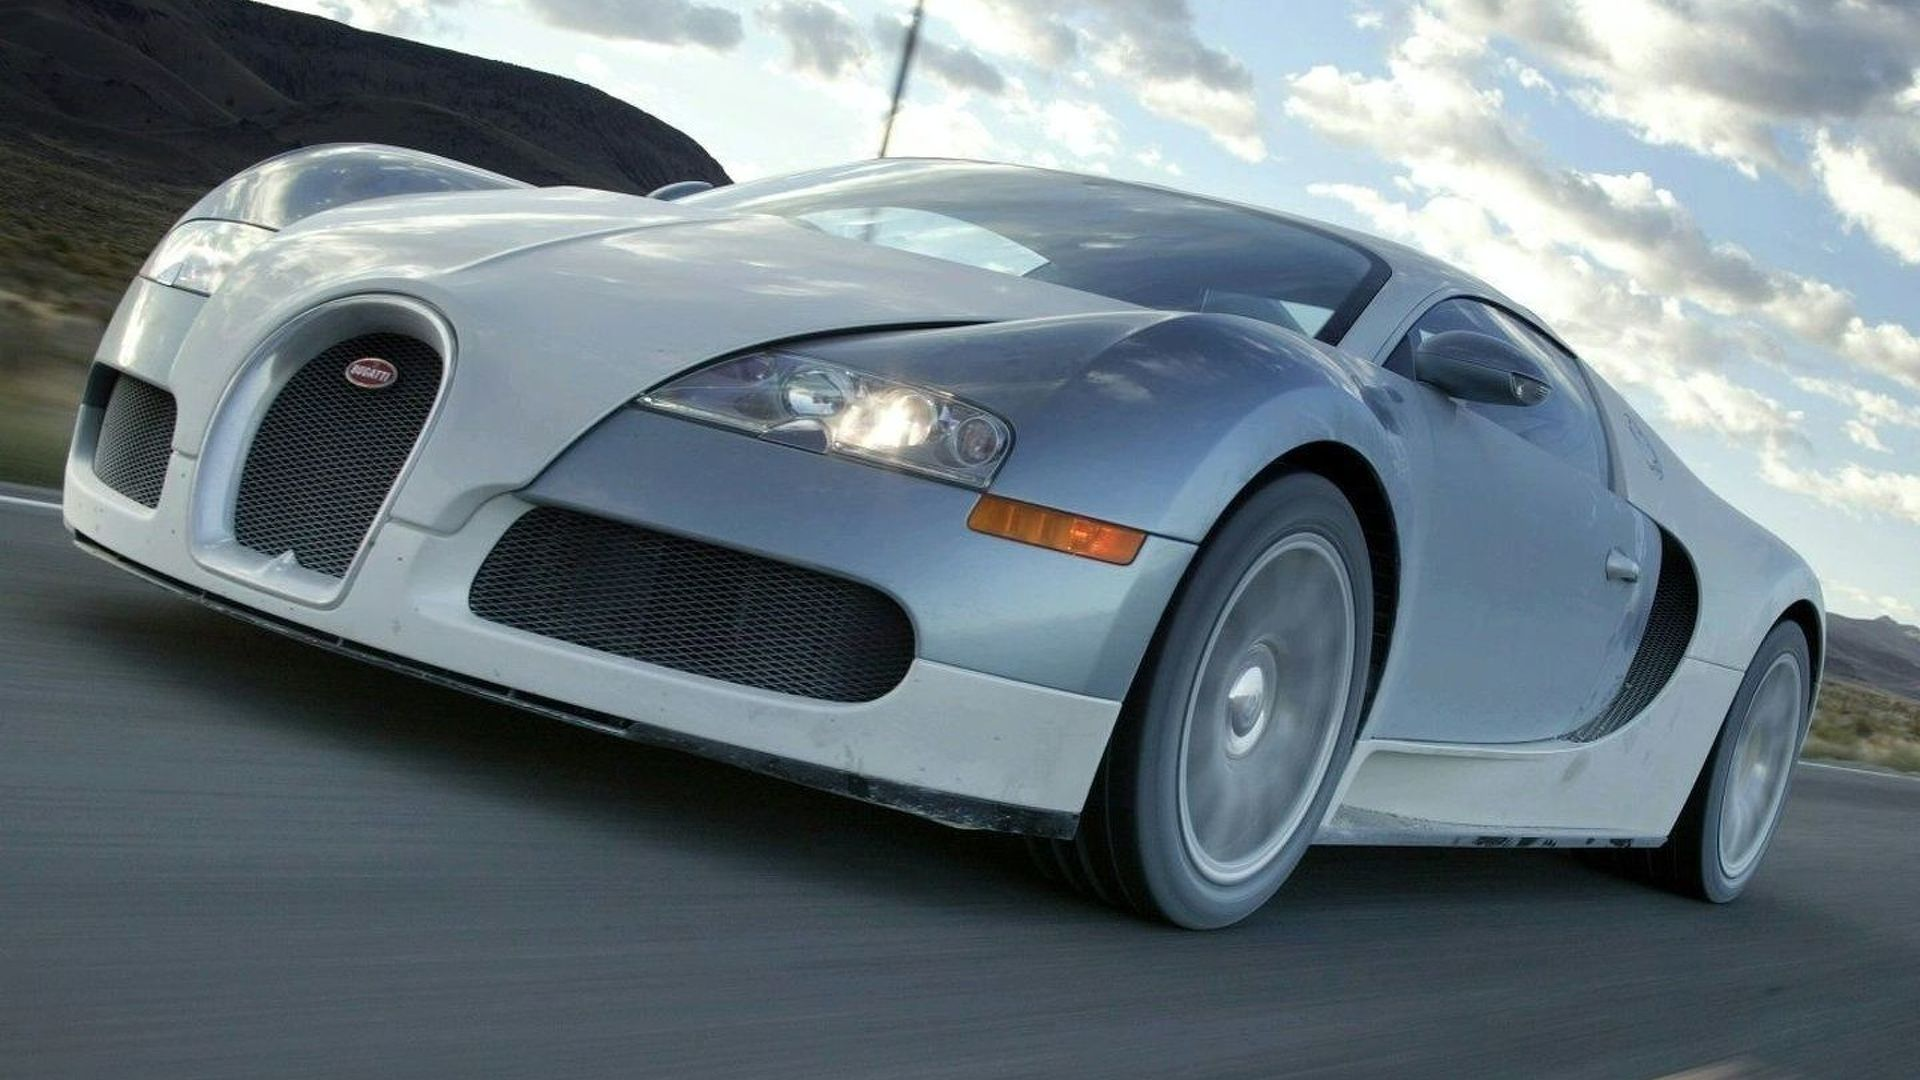 Report - Bugatti Veyron Production Run Almost Sold Out